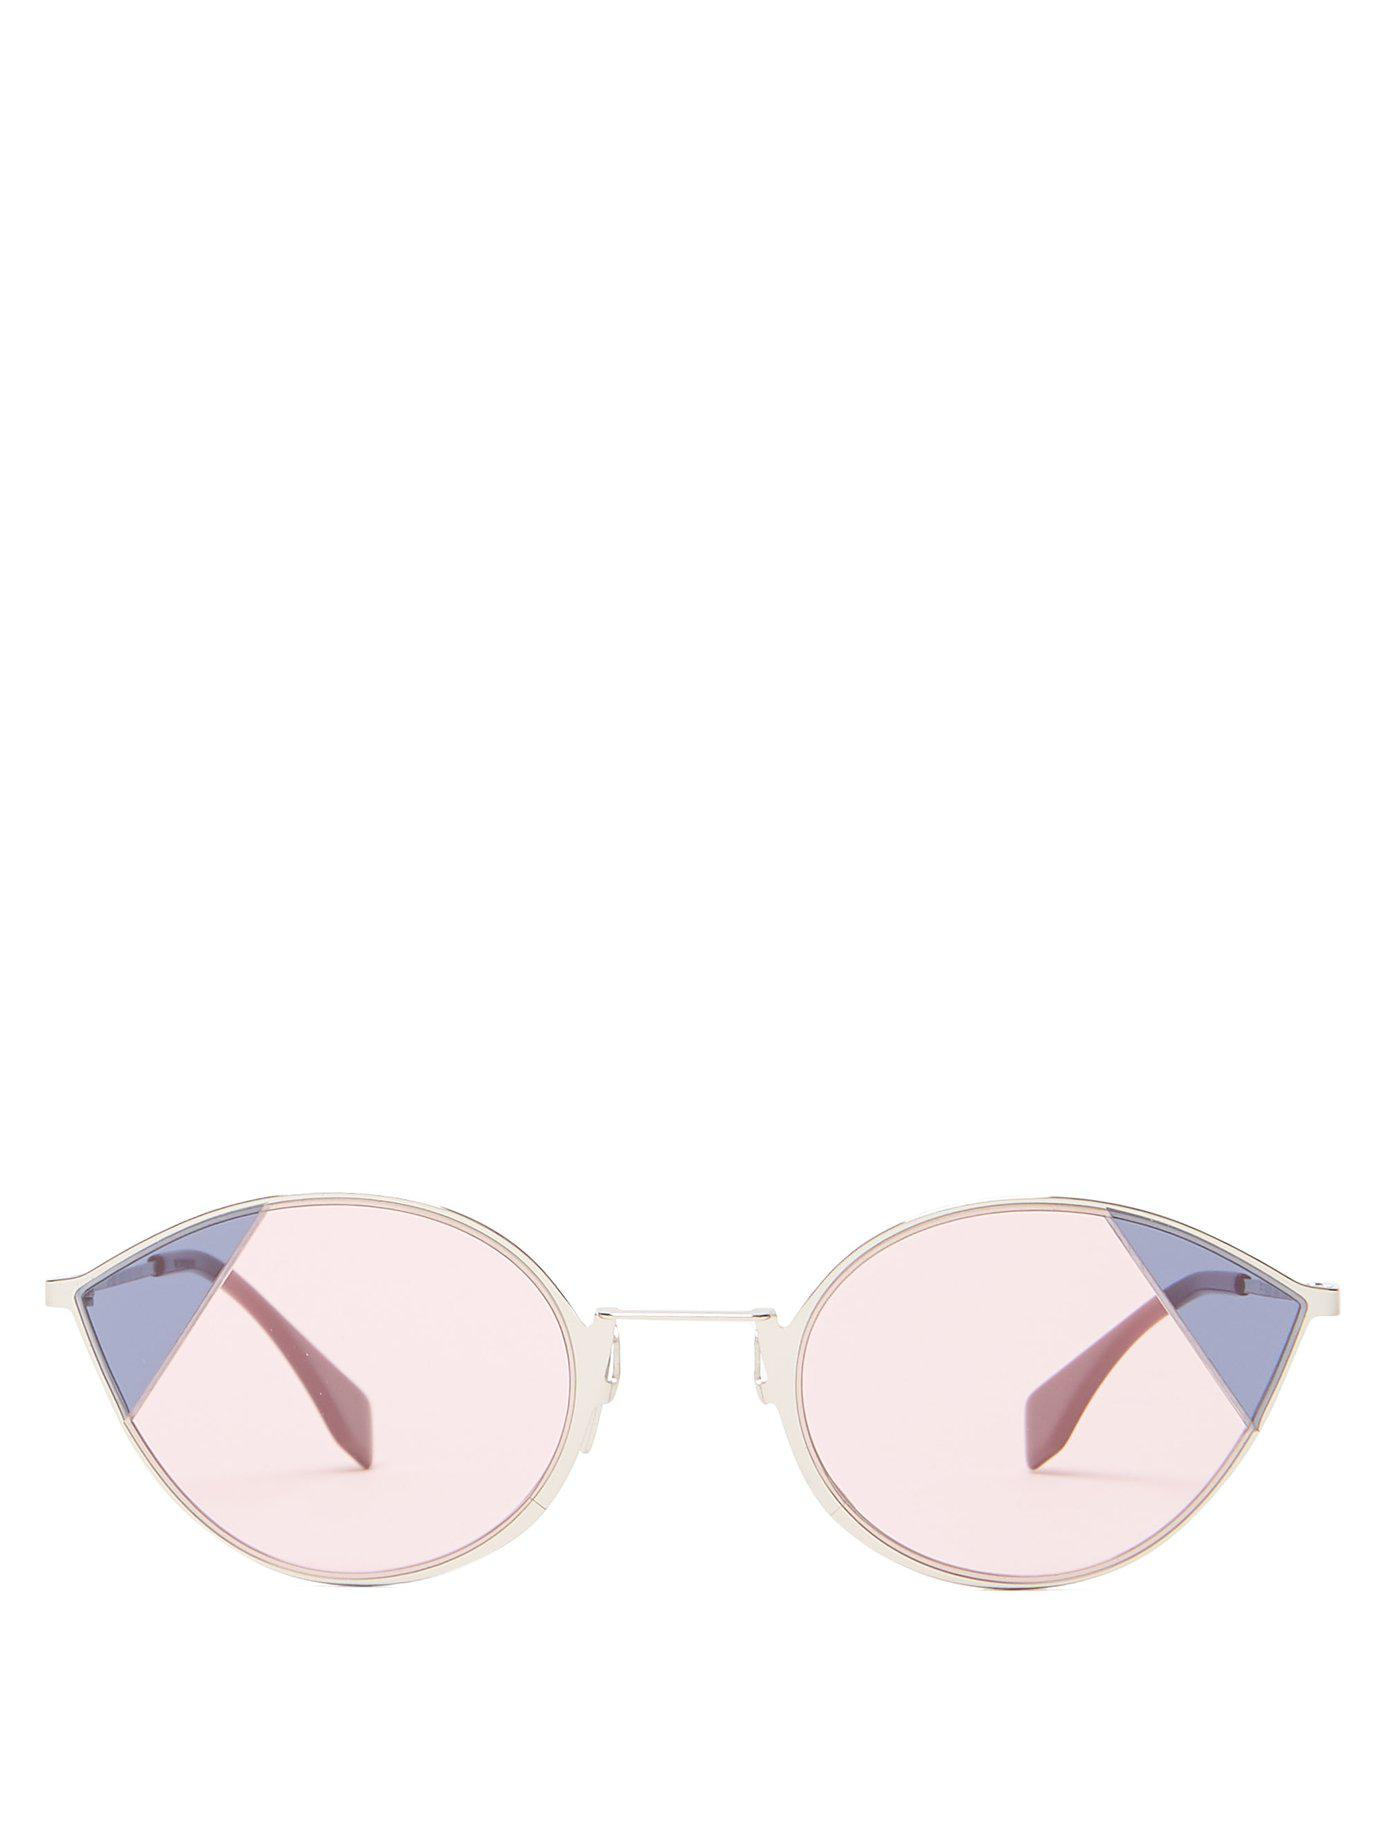 fcc736d47ee82 Lyst - Fendi Cat Eye Sunglasses in Pink - Save 1%